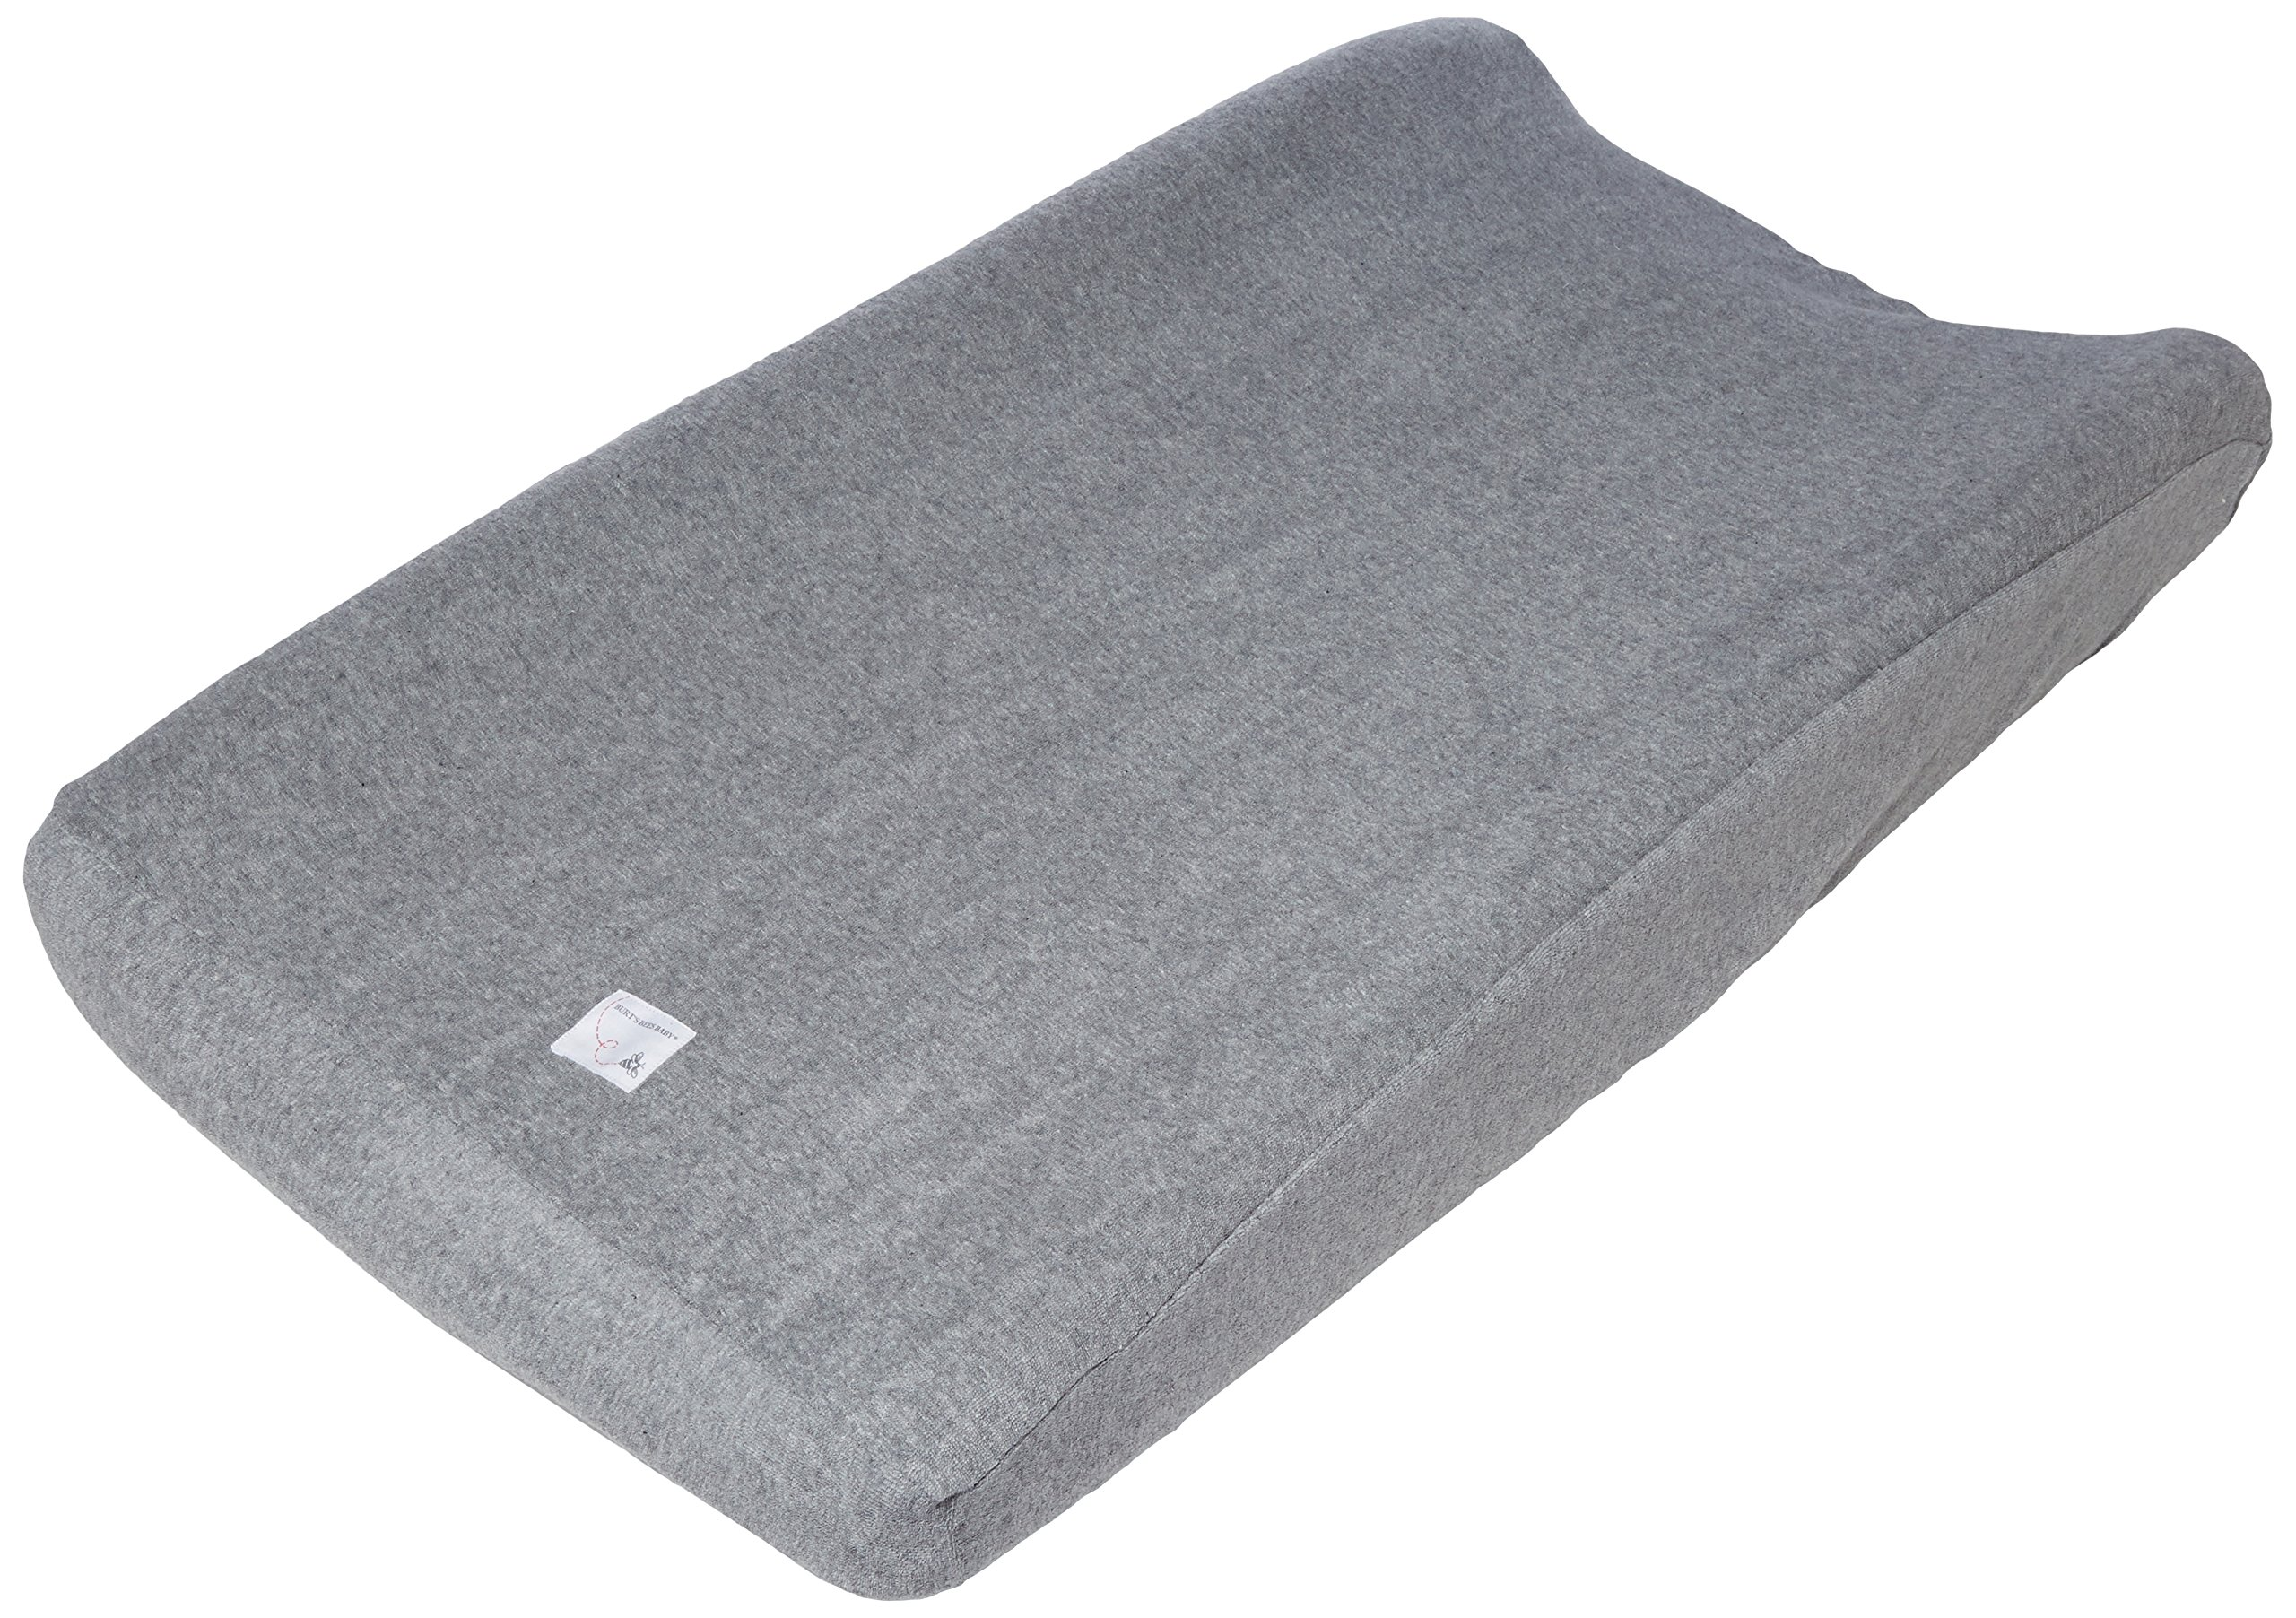 Changing Pad Cover Heather Grey Burts Bees Baby 100/% Organic Cotton for Standard 16 x 32 Changing Pads Super Absorbent Knit Terry